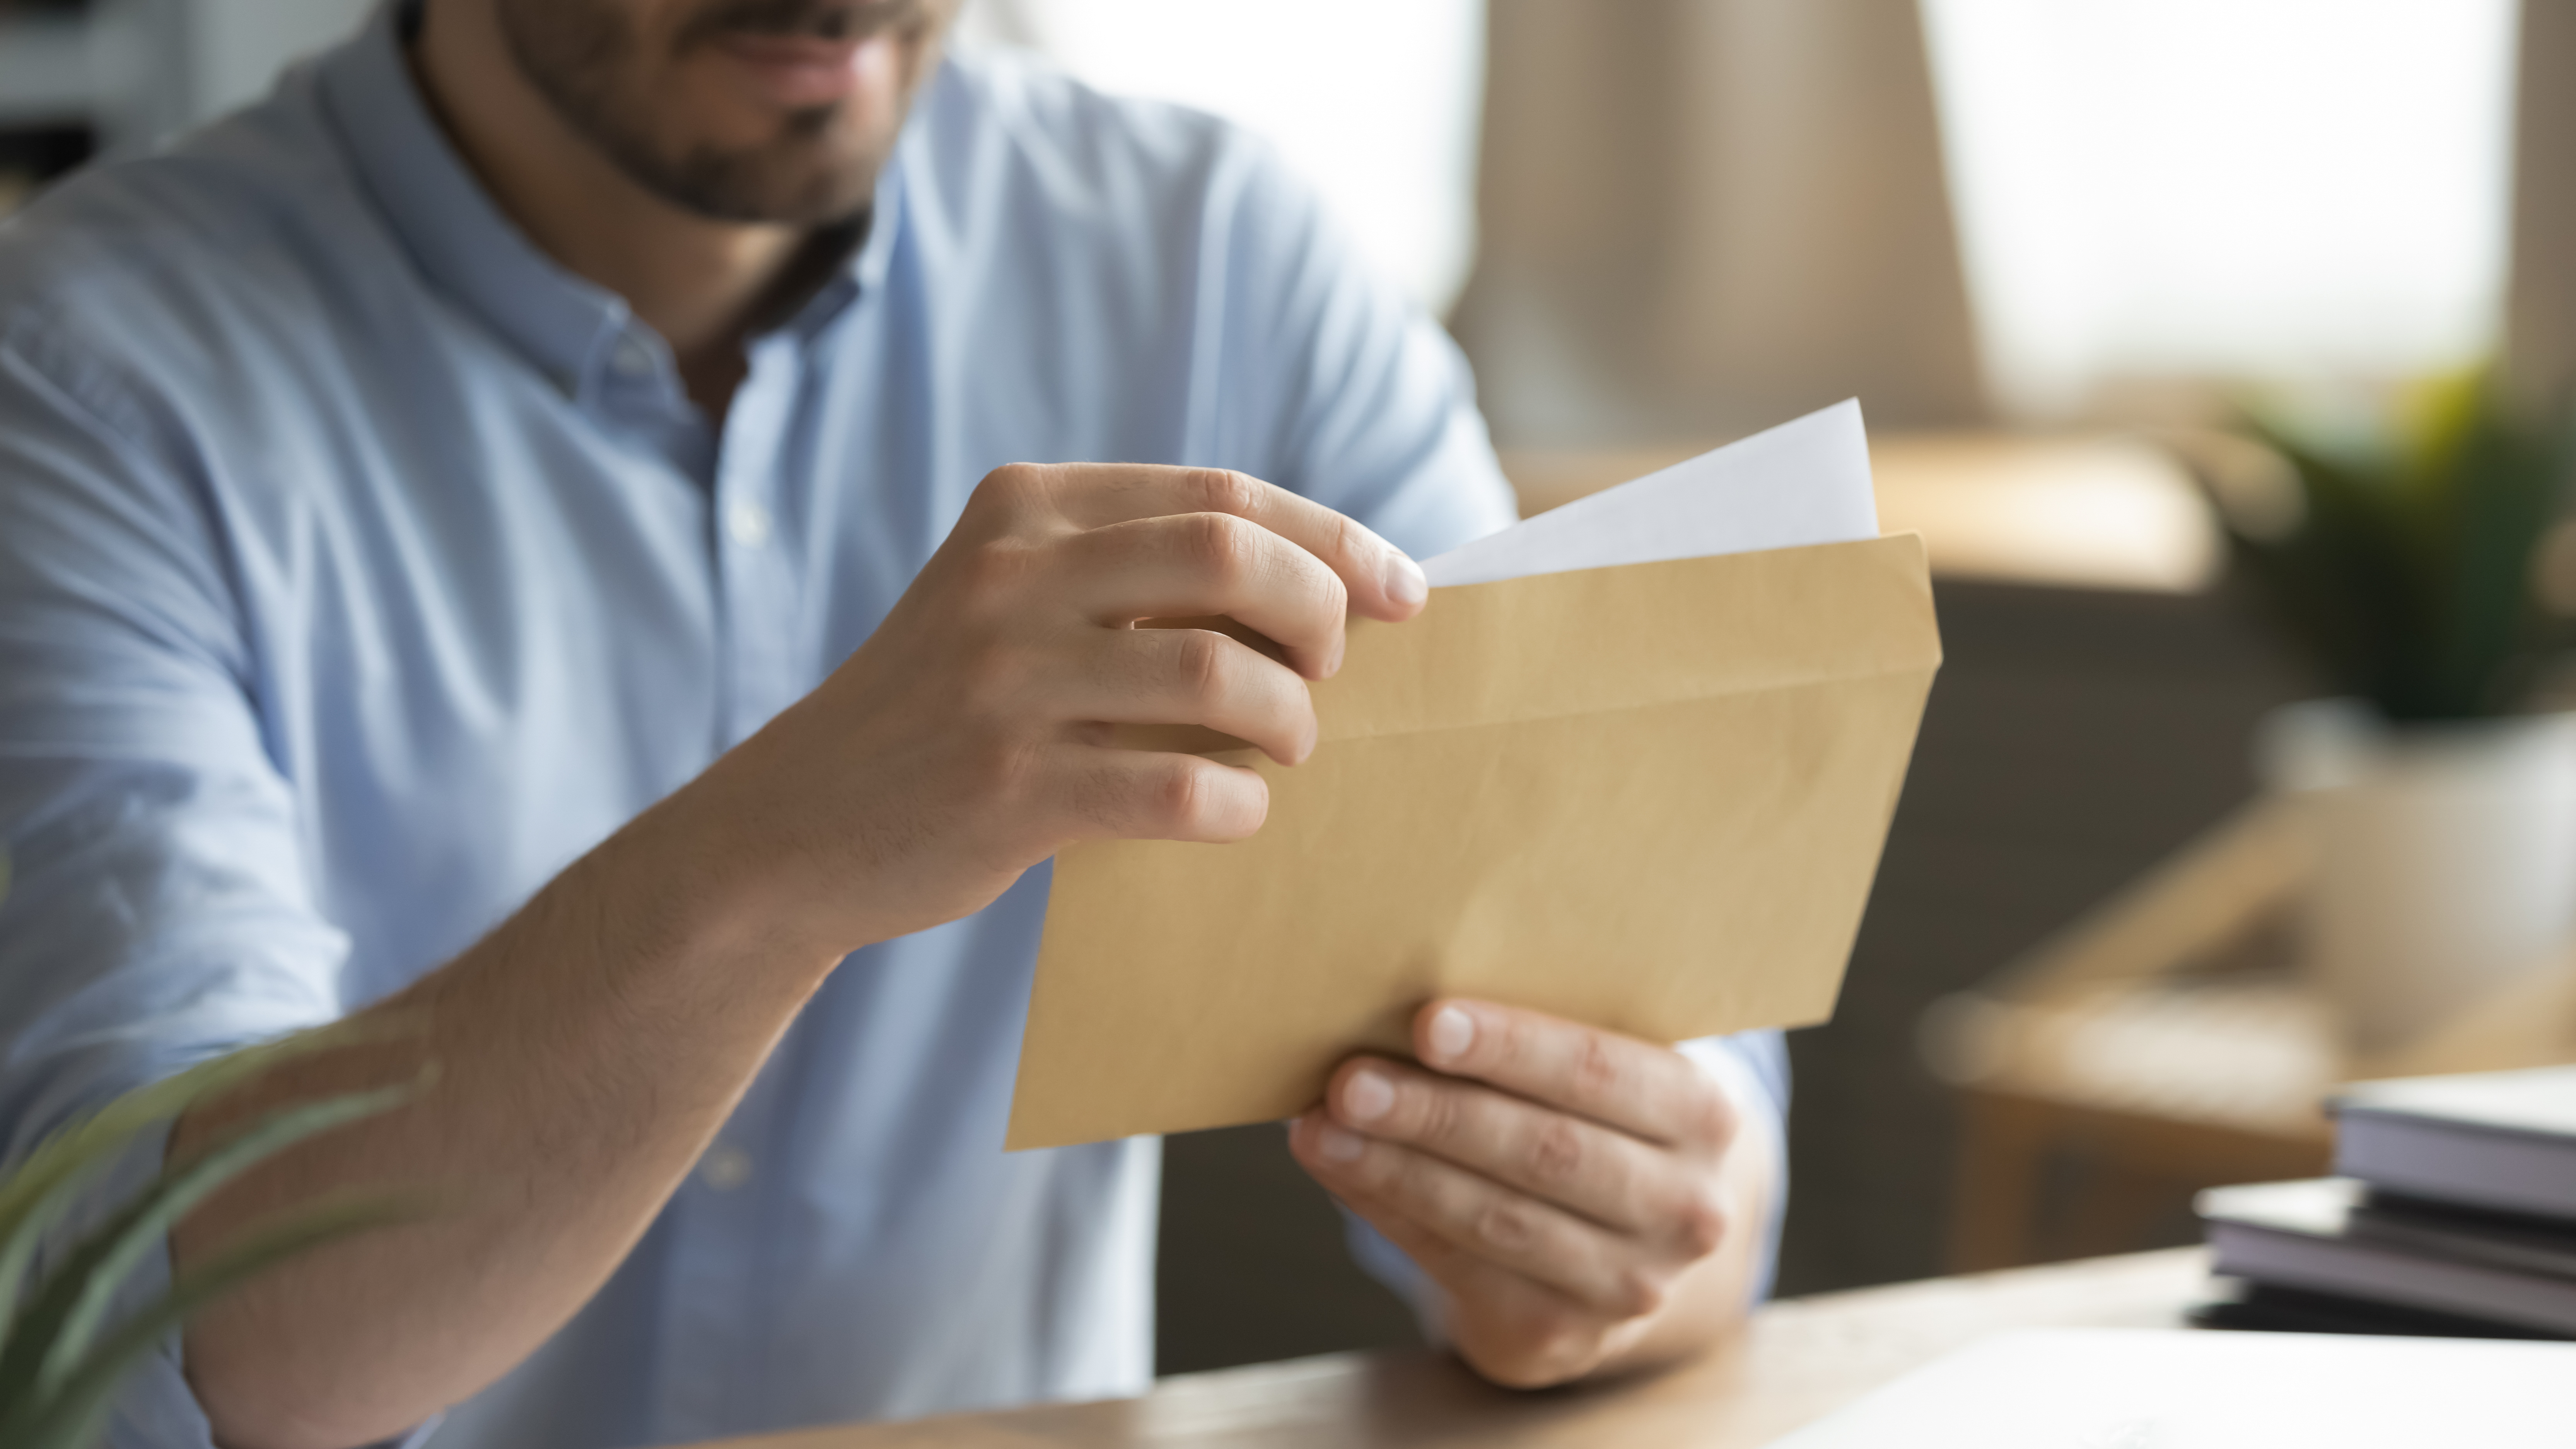 Close up young man opening envelope with paper correspondence. Curious businessman getting paper document by postal service or financial notification at workplace, received notification or invitation